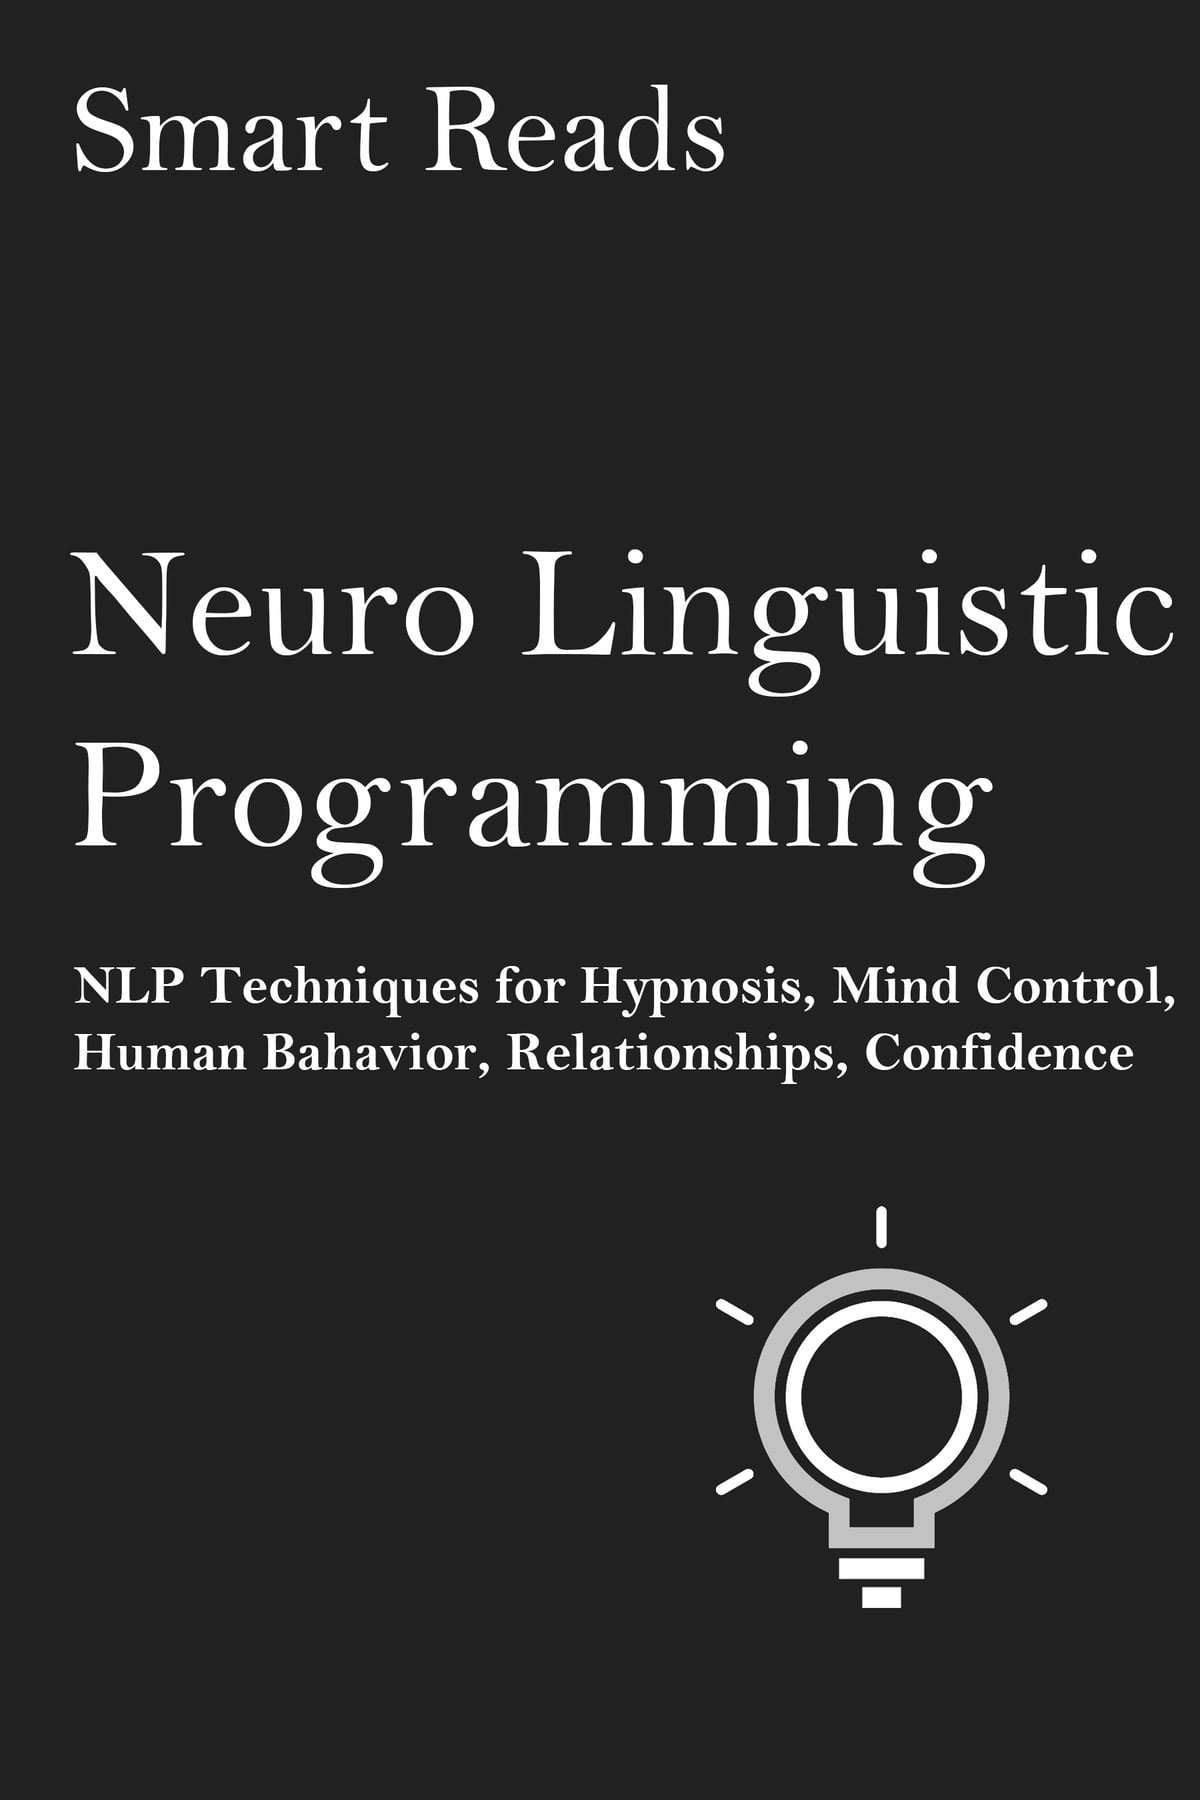 Mind control techniques - Neuro Linguistic Programming Nlp Techniques For Hypnosis Mind Control Human Behavior Relationships Confidence Ebook By Smartreads 9781370622900